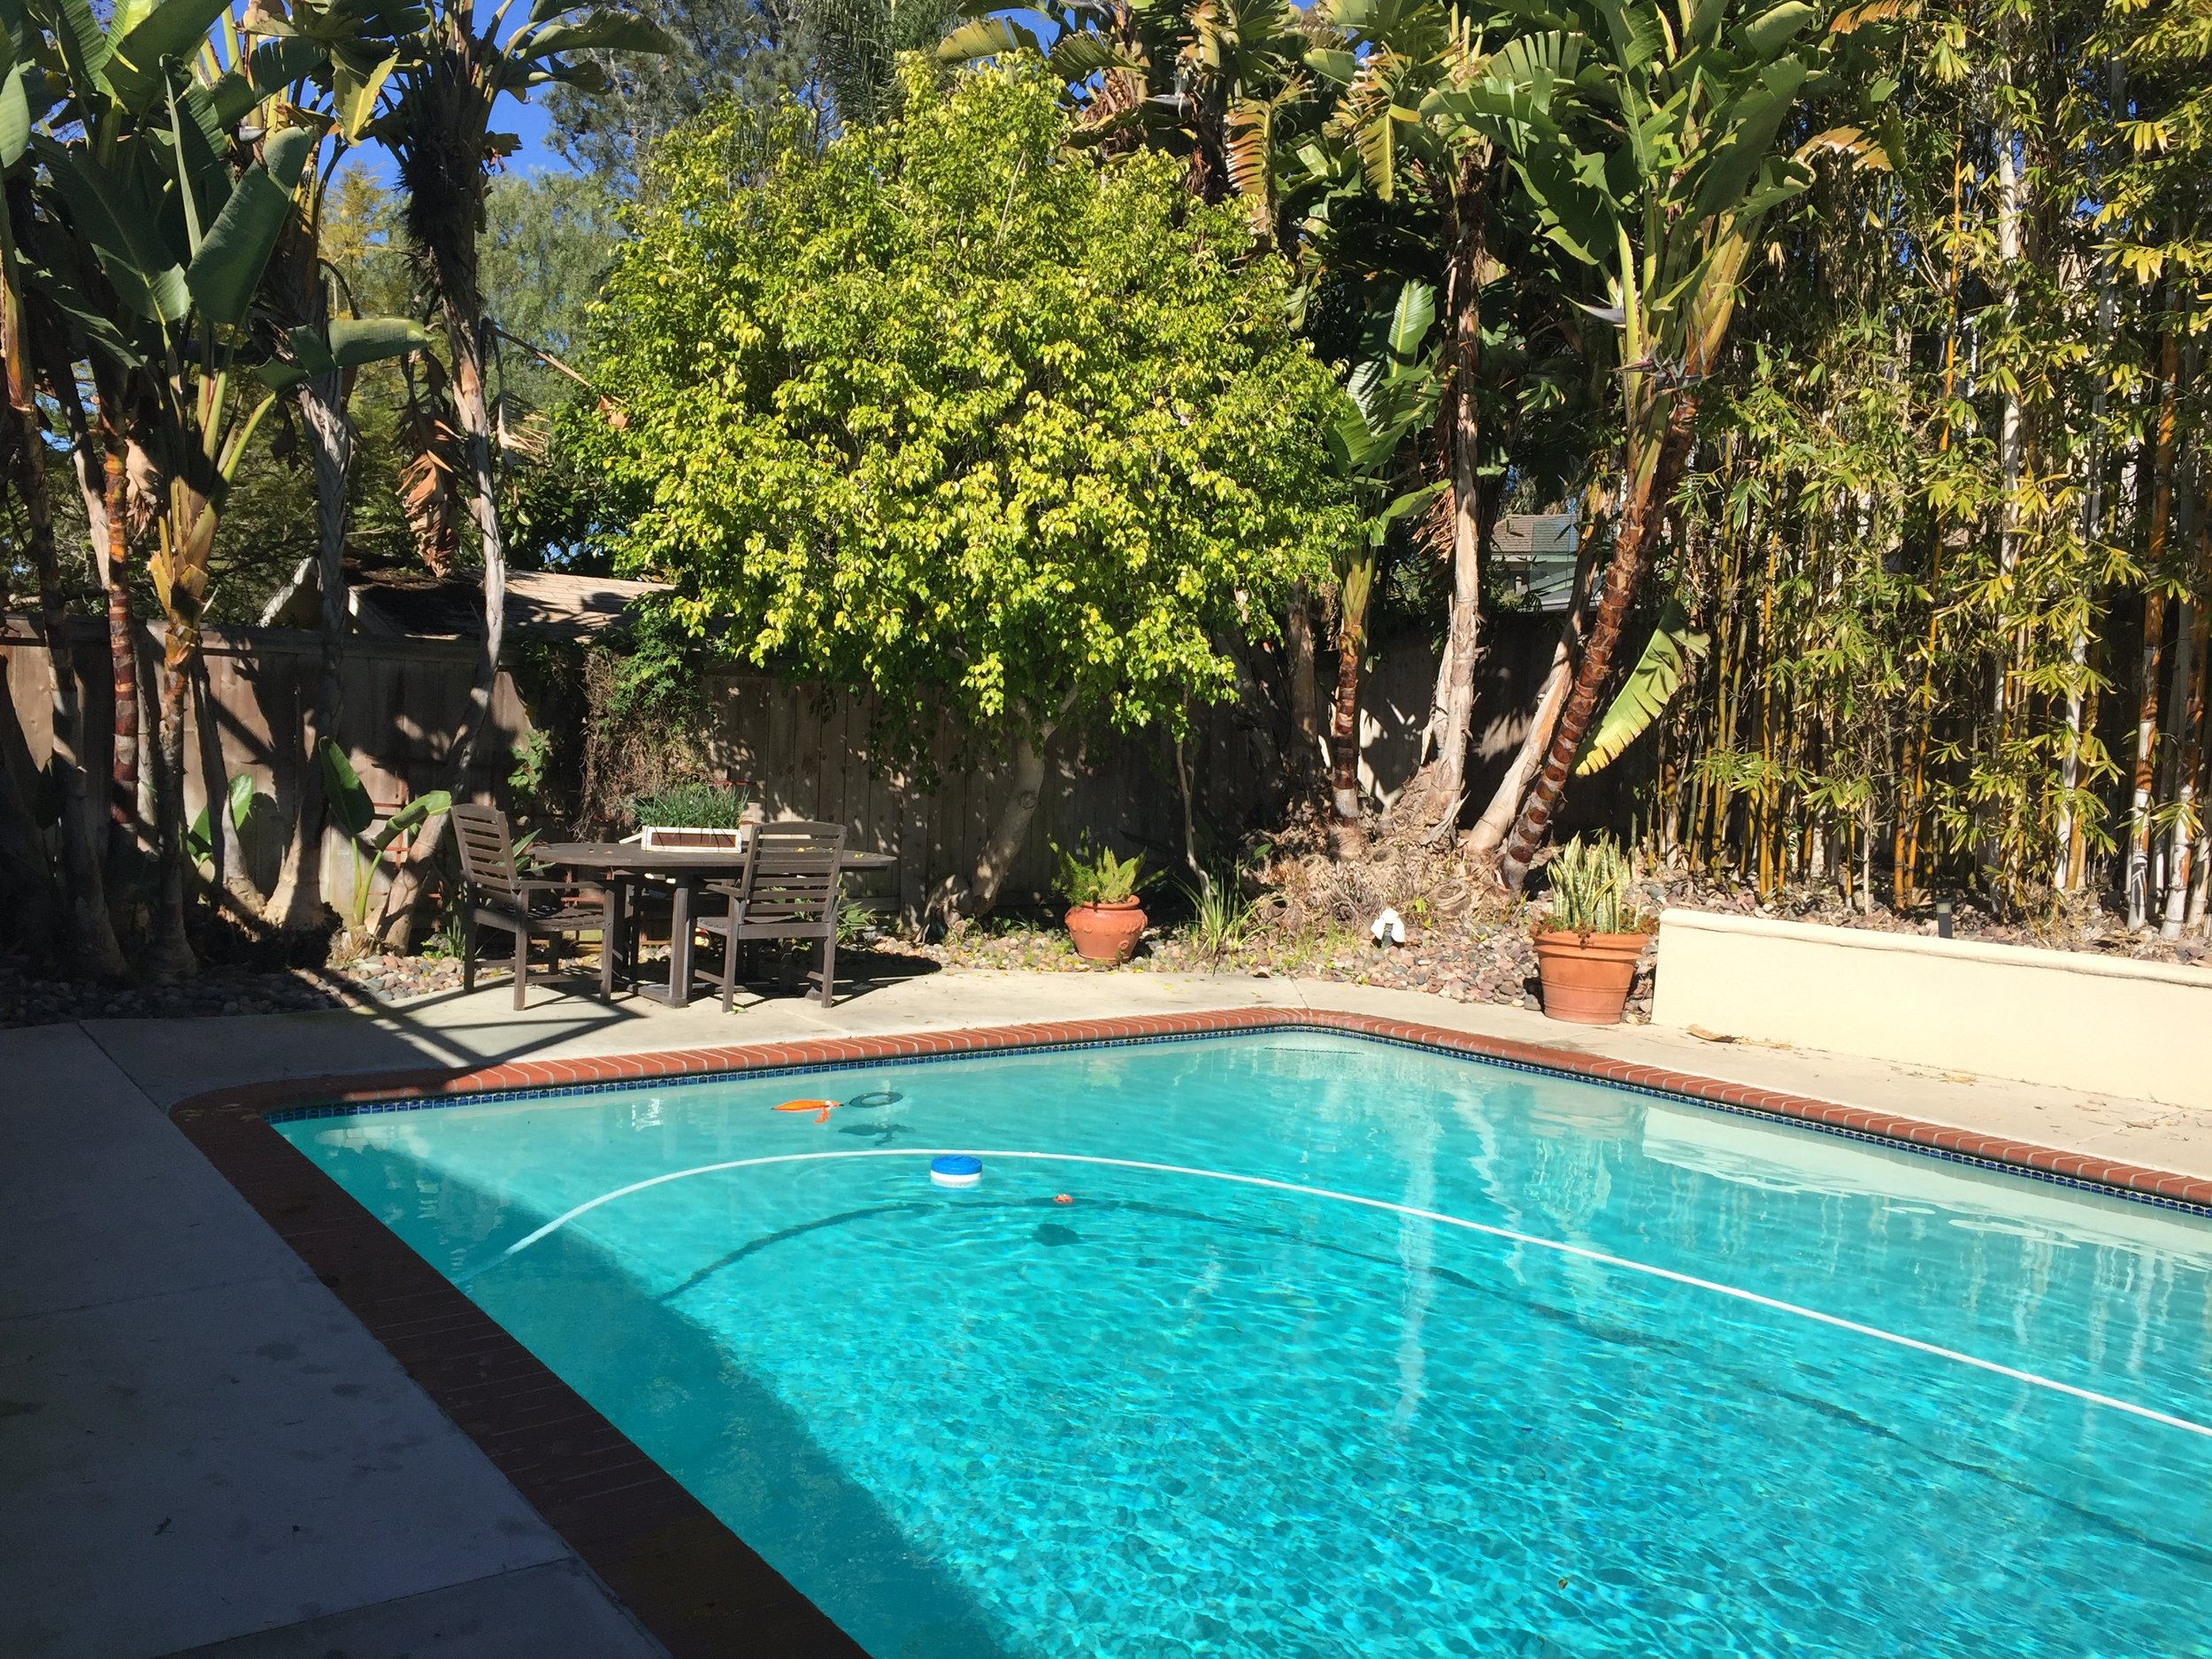 Before, there was a very large pool that was fit for an active family, but now with the kids grown up and moved out the clients want a leisure pool that is suitable for the new activities that they want to host in their backyard.